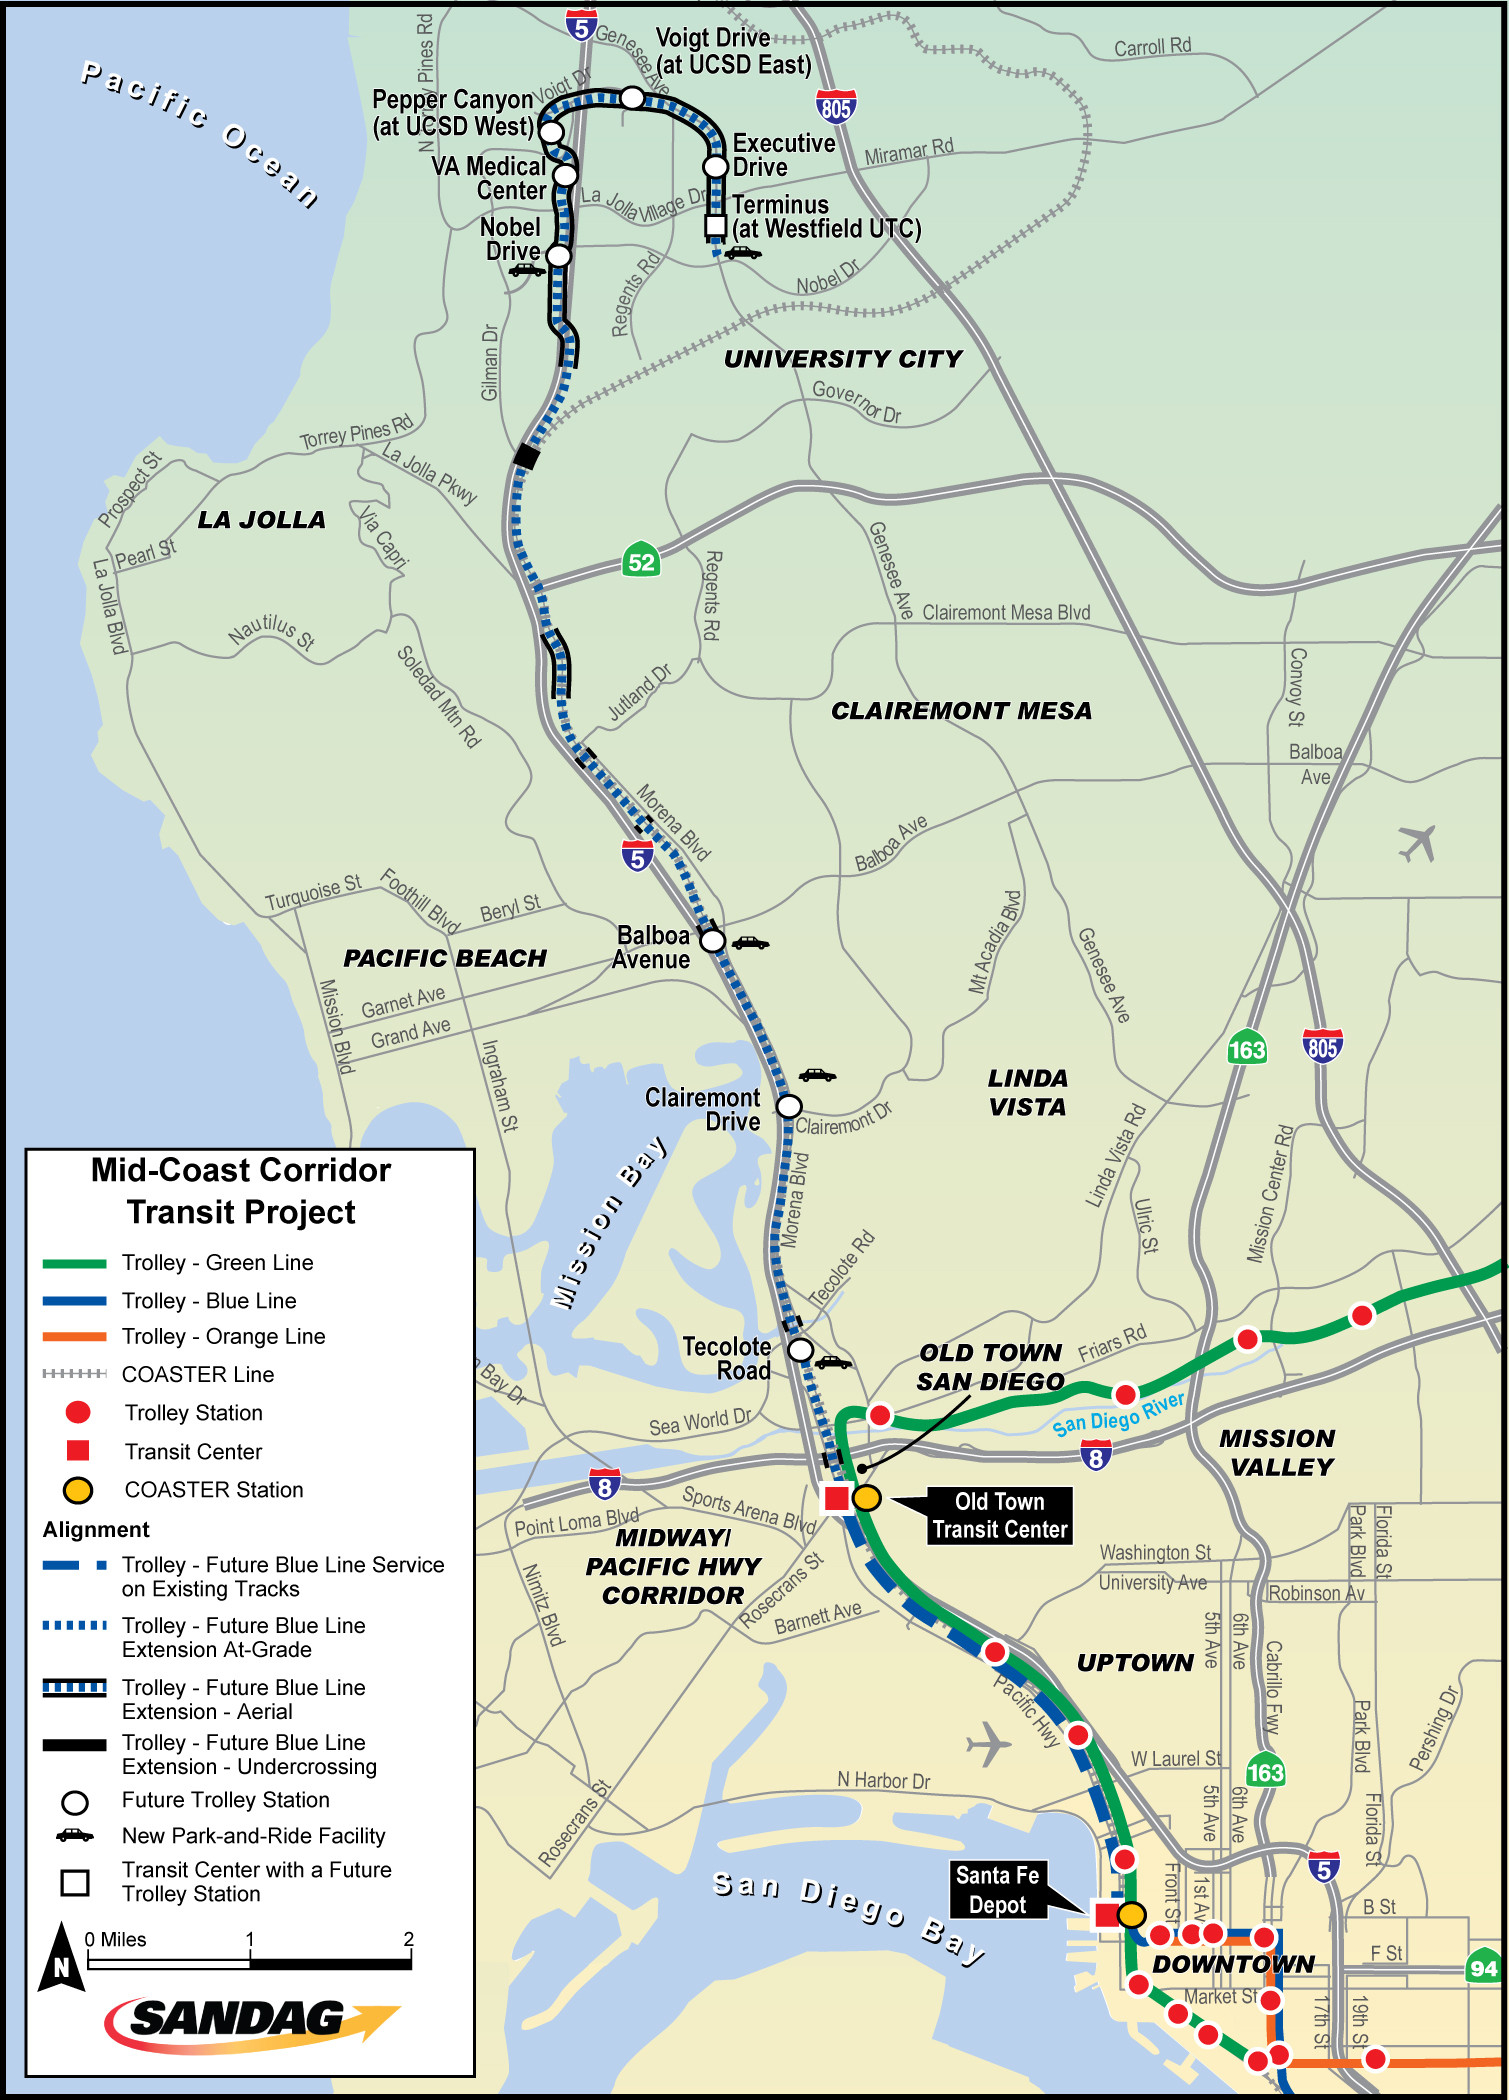 San Diego On A Map Of California Outline Mid Coast Corridor Transit - San Diego On A Map Of California